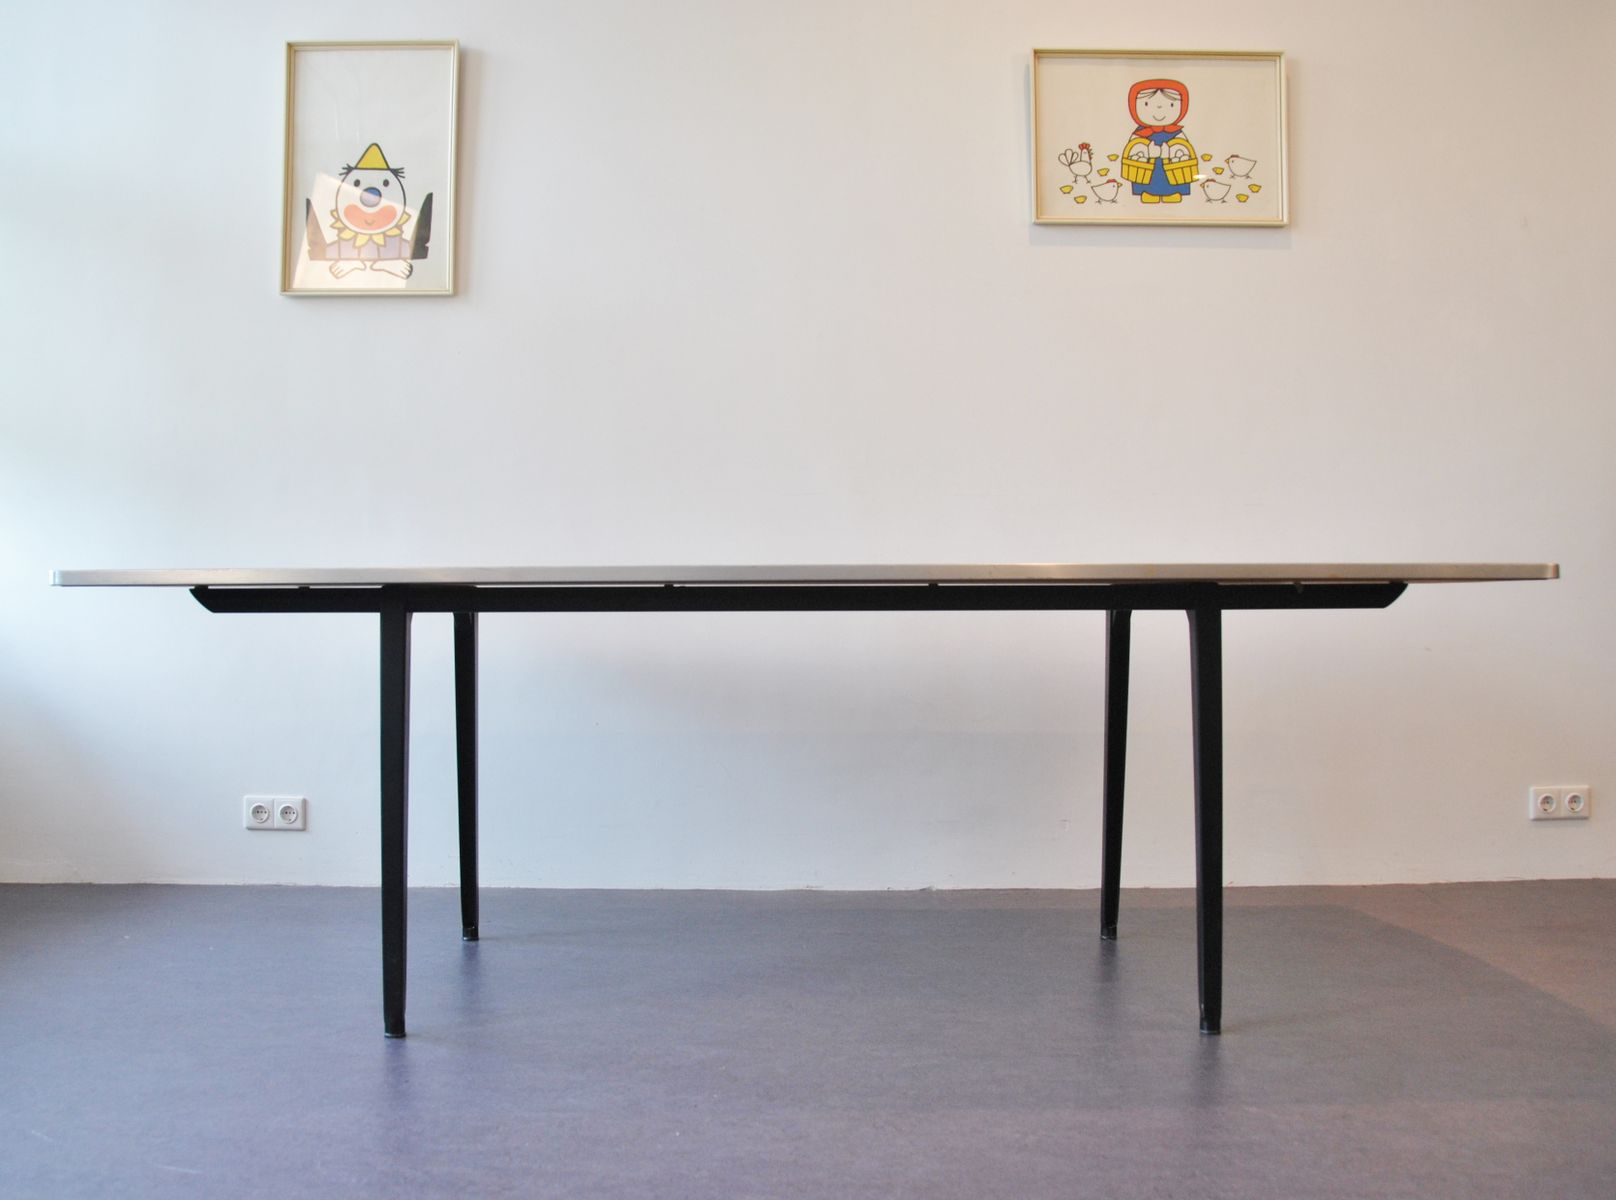 Revolt dining table by friso kramer for ahrend 1963 for sale at pamono - Kamer dining ...